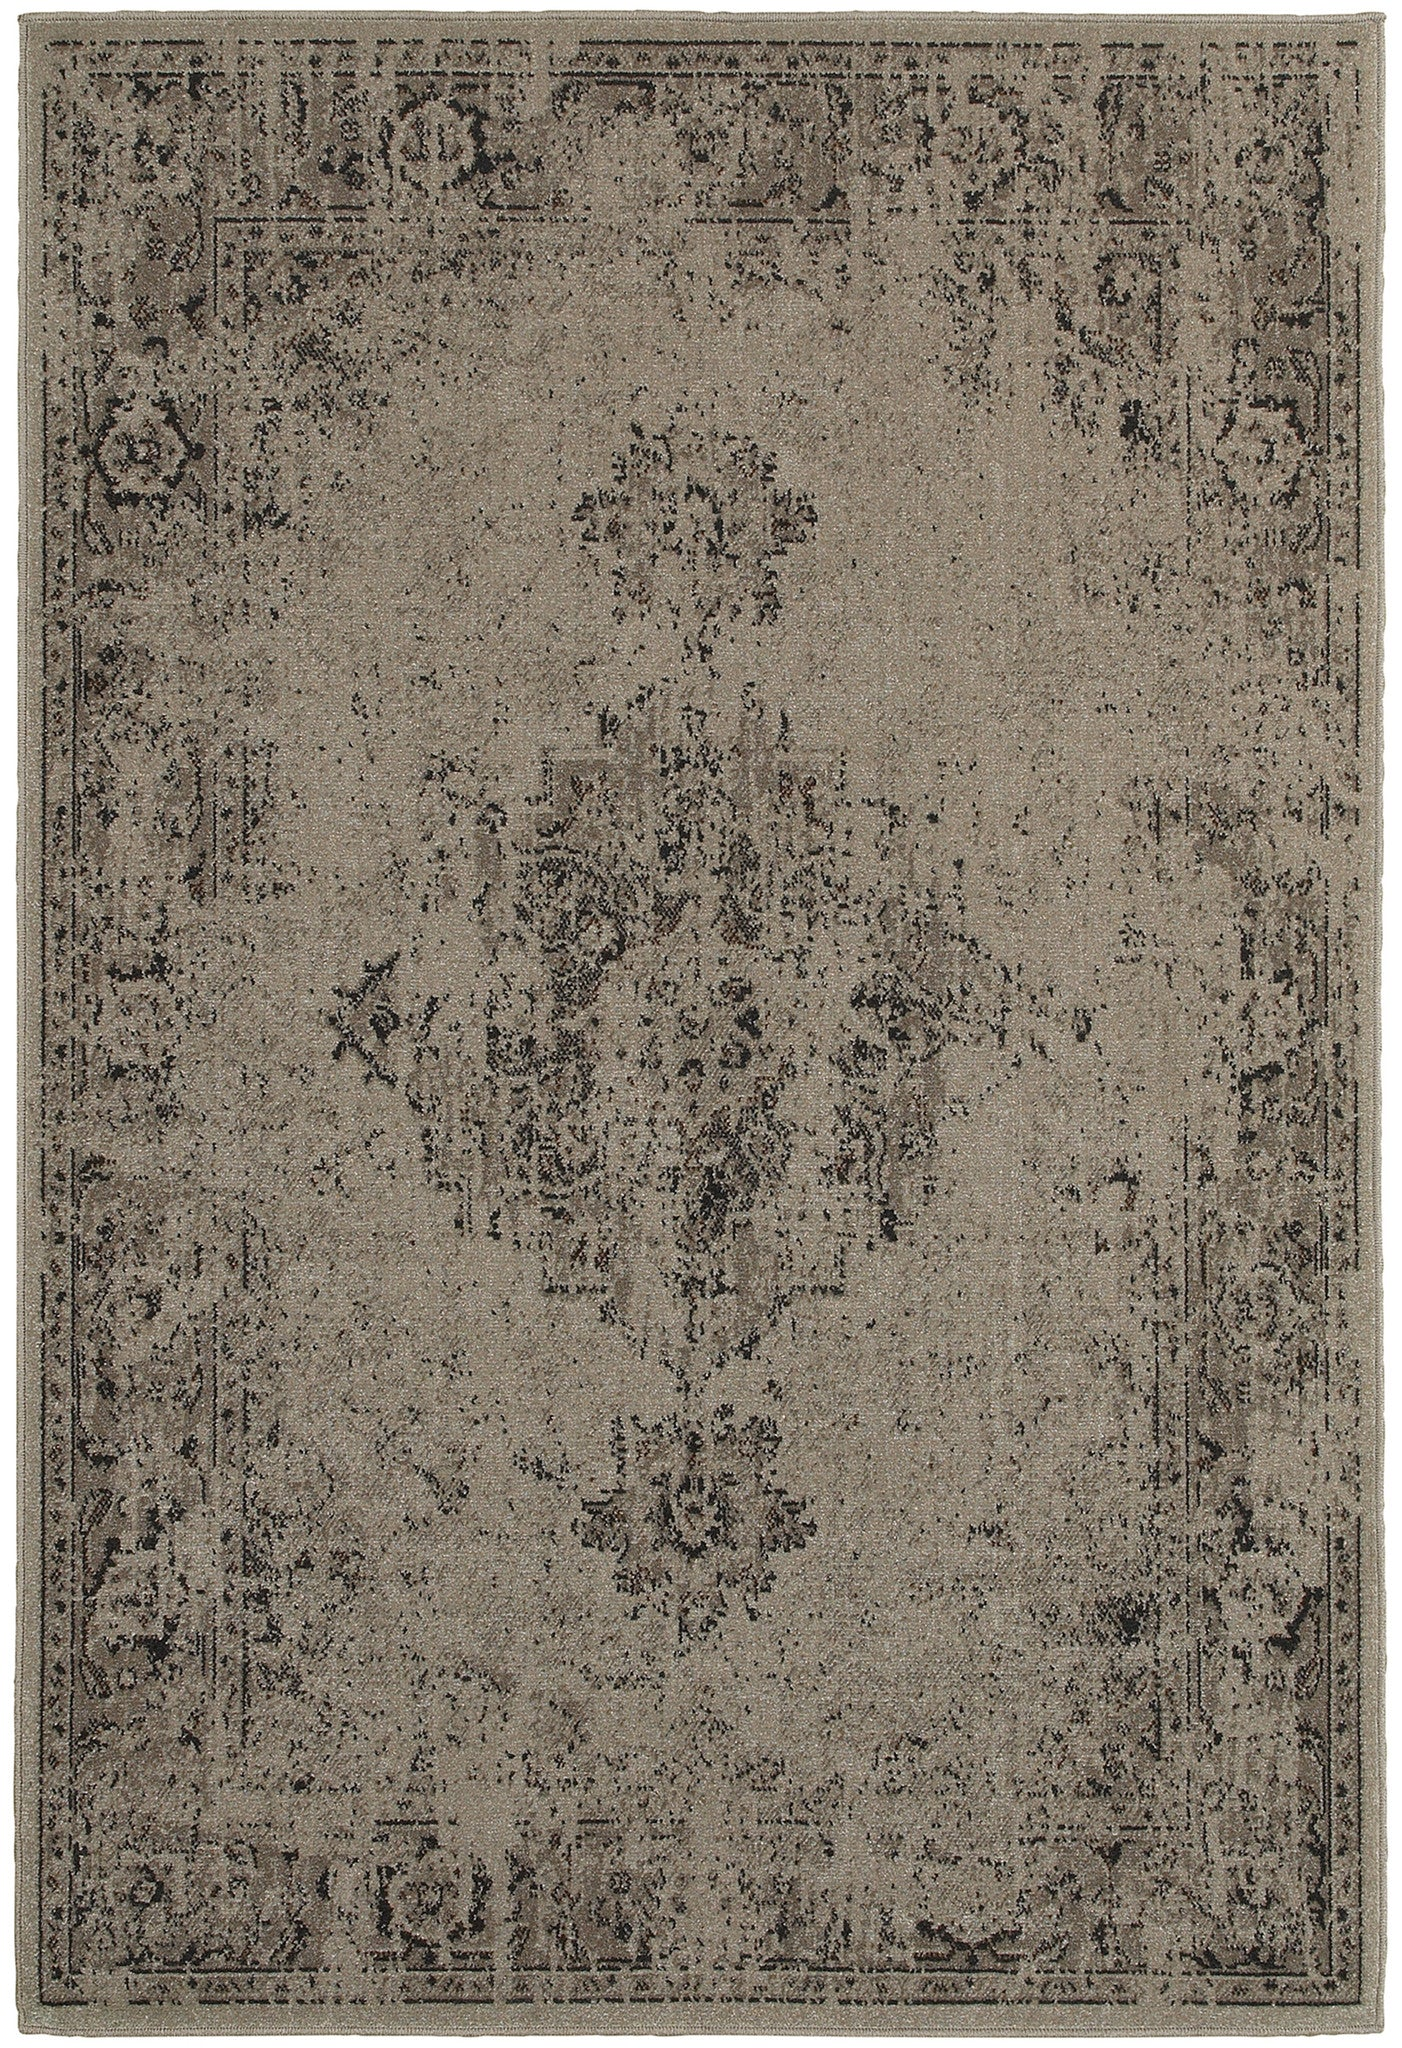 Worn Gray Faded Rug